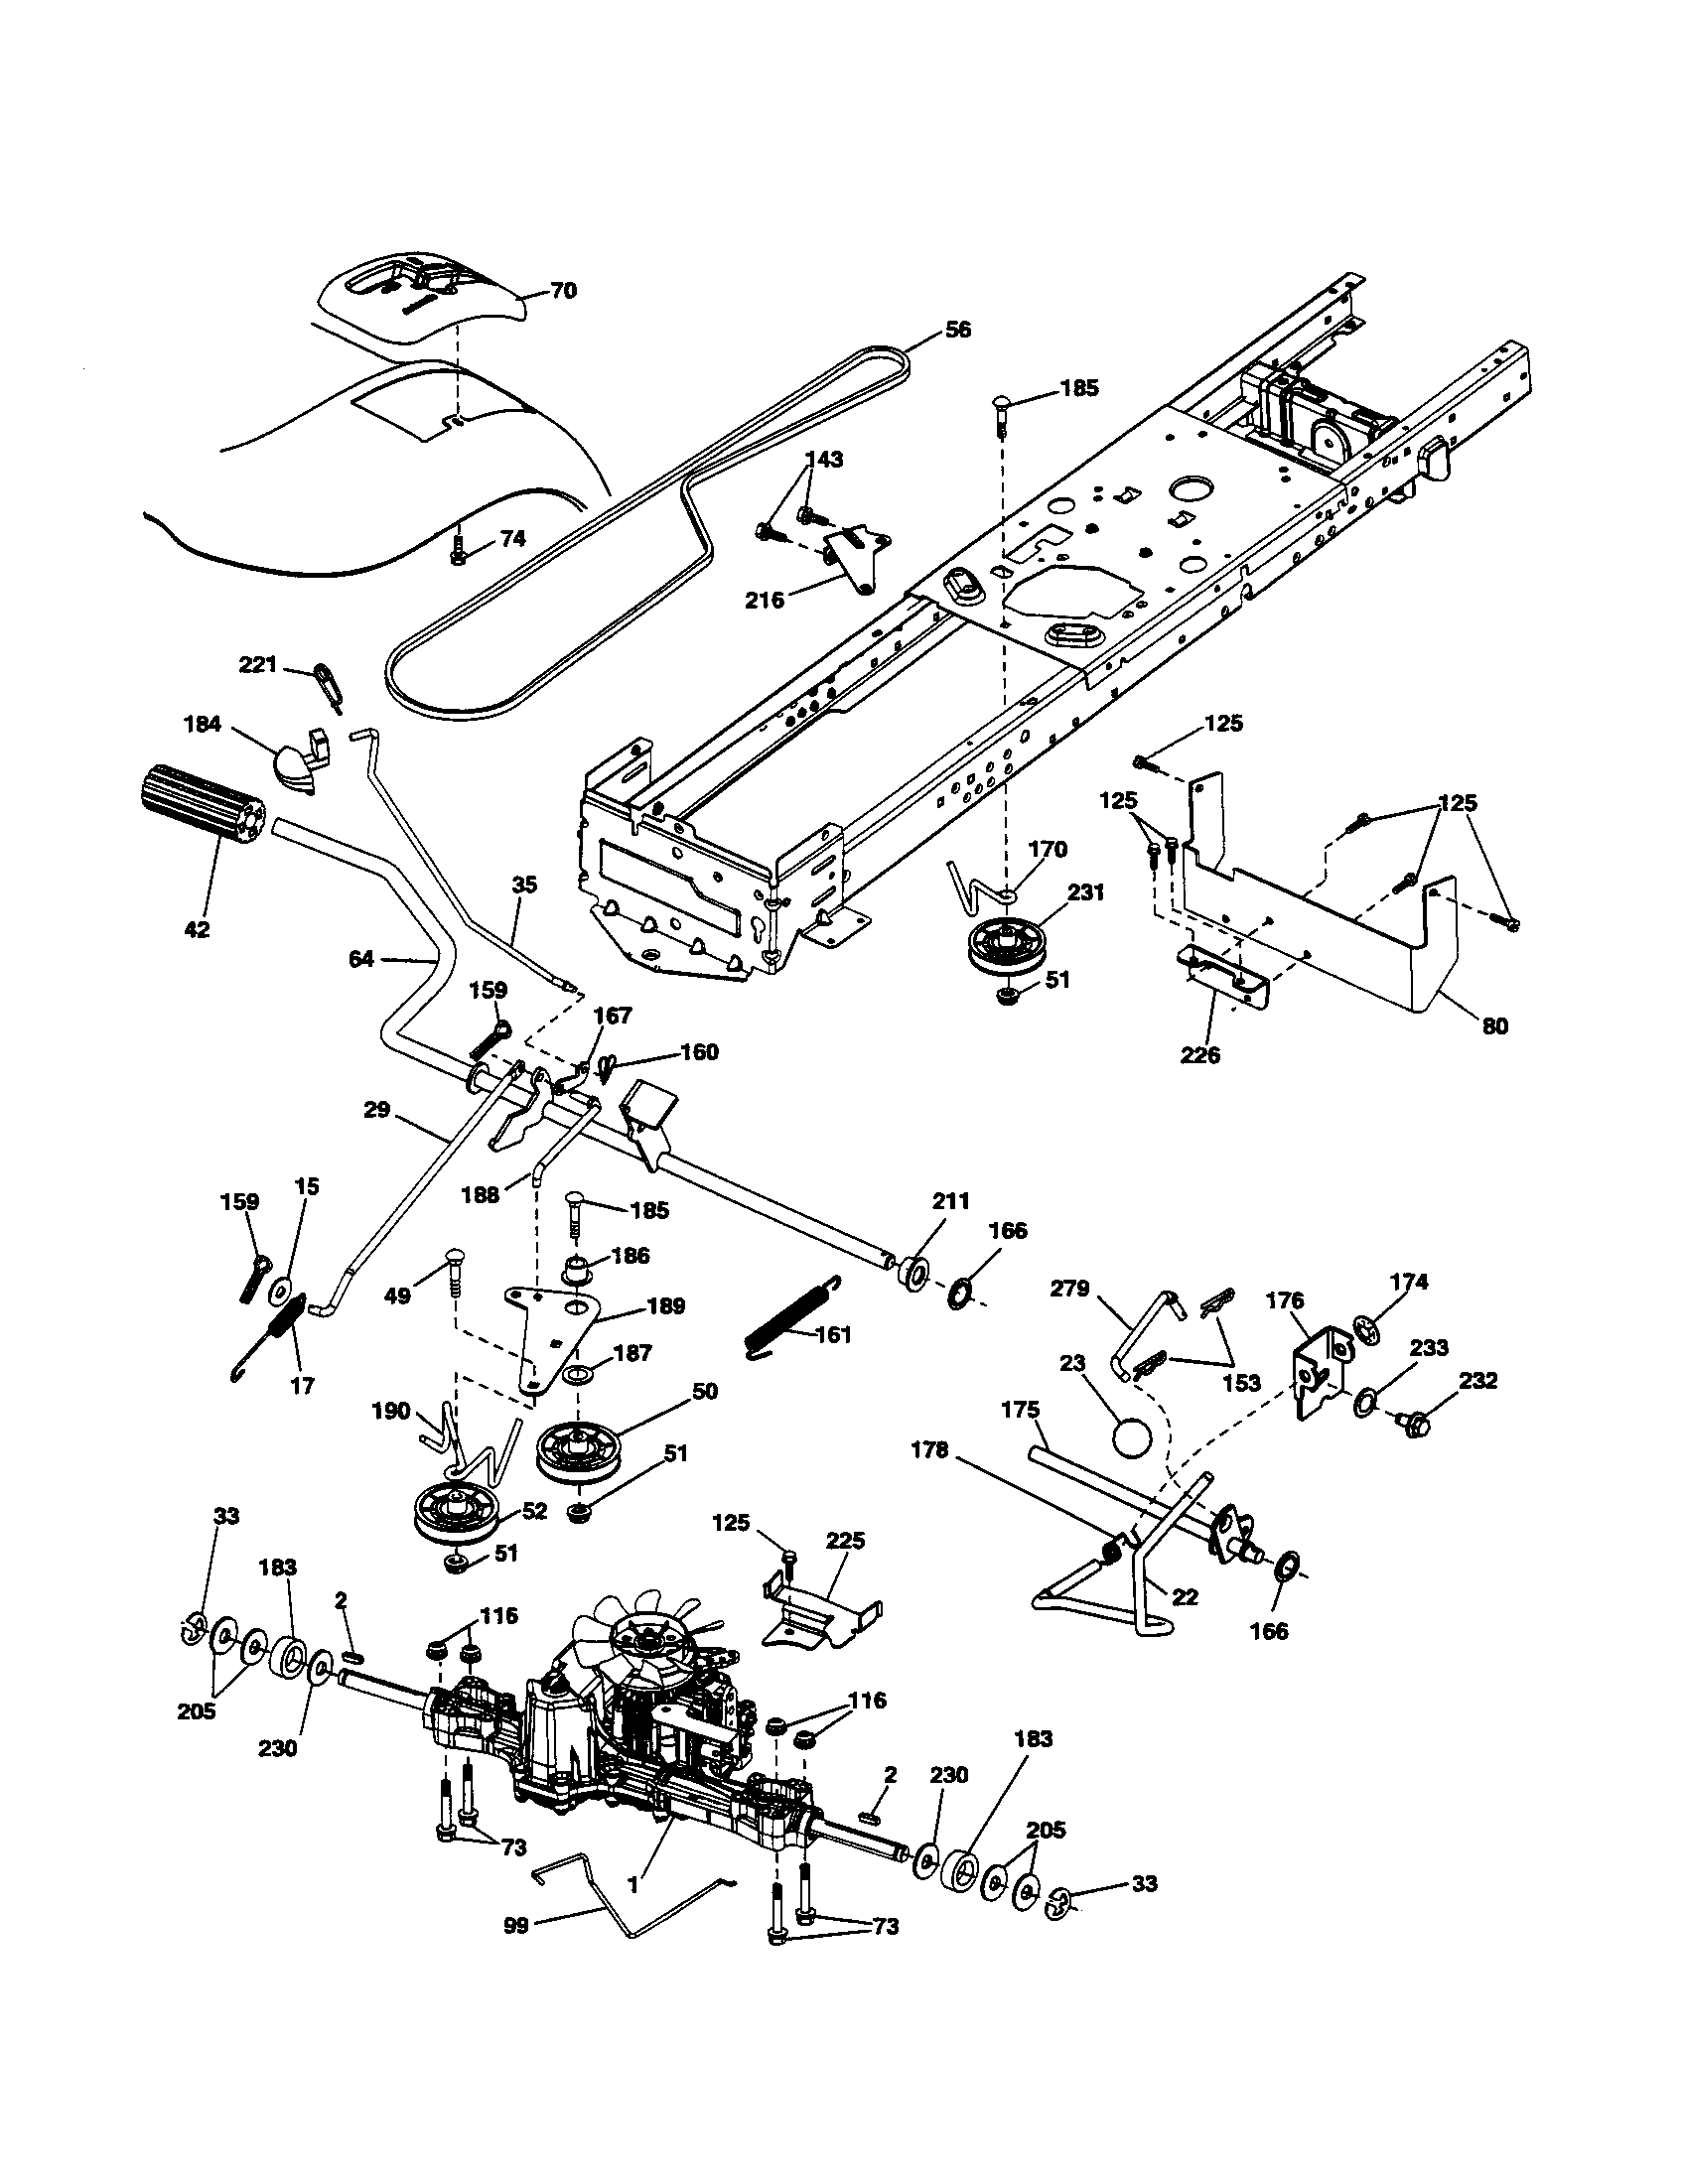 hight resolution of  ayp wiring diagram looking for ariens model 93604200 front engine lawn tractor repair on columbia wiring diagram